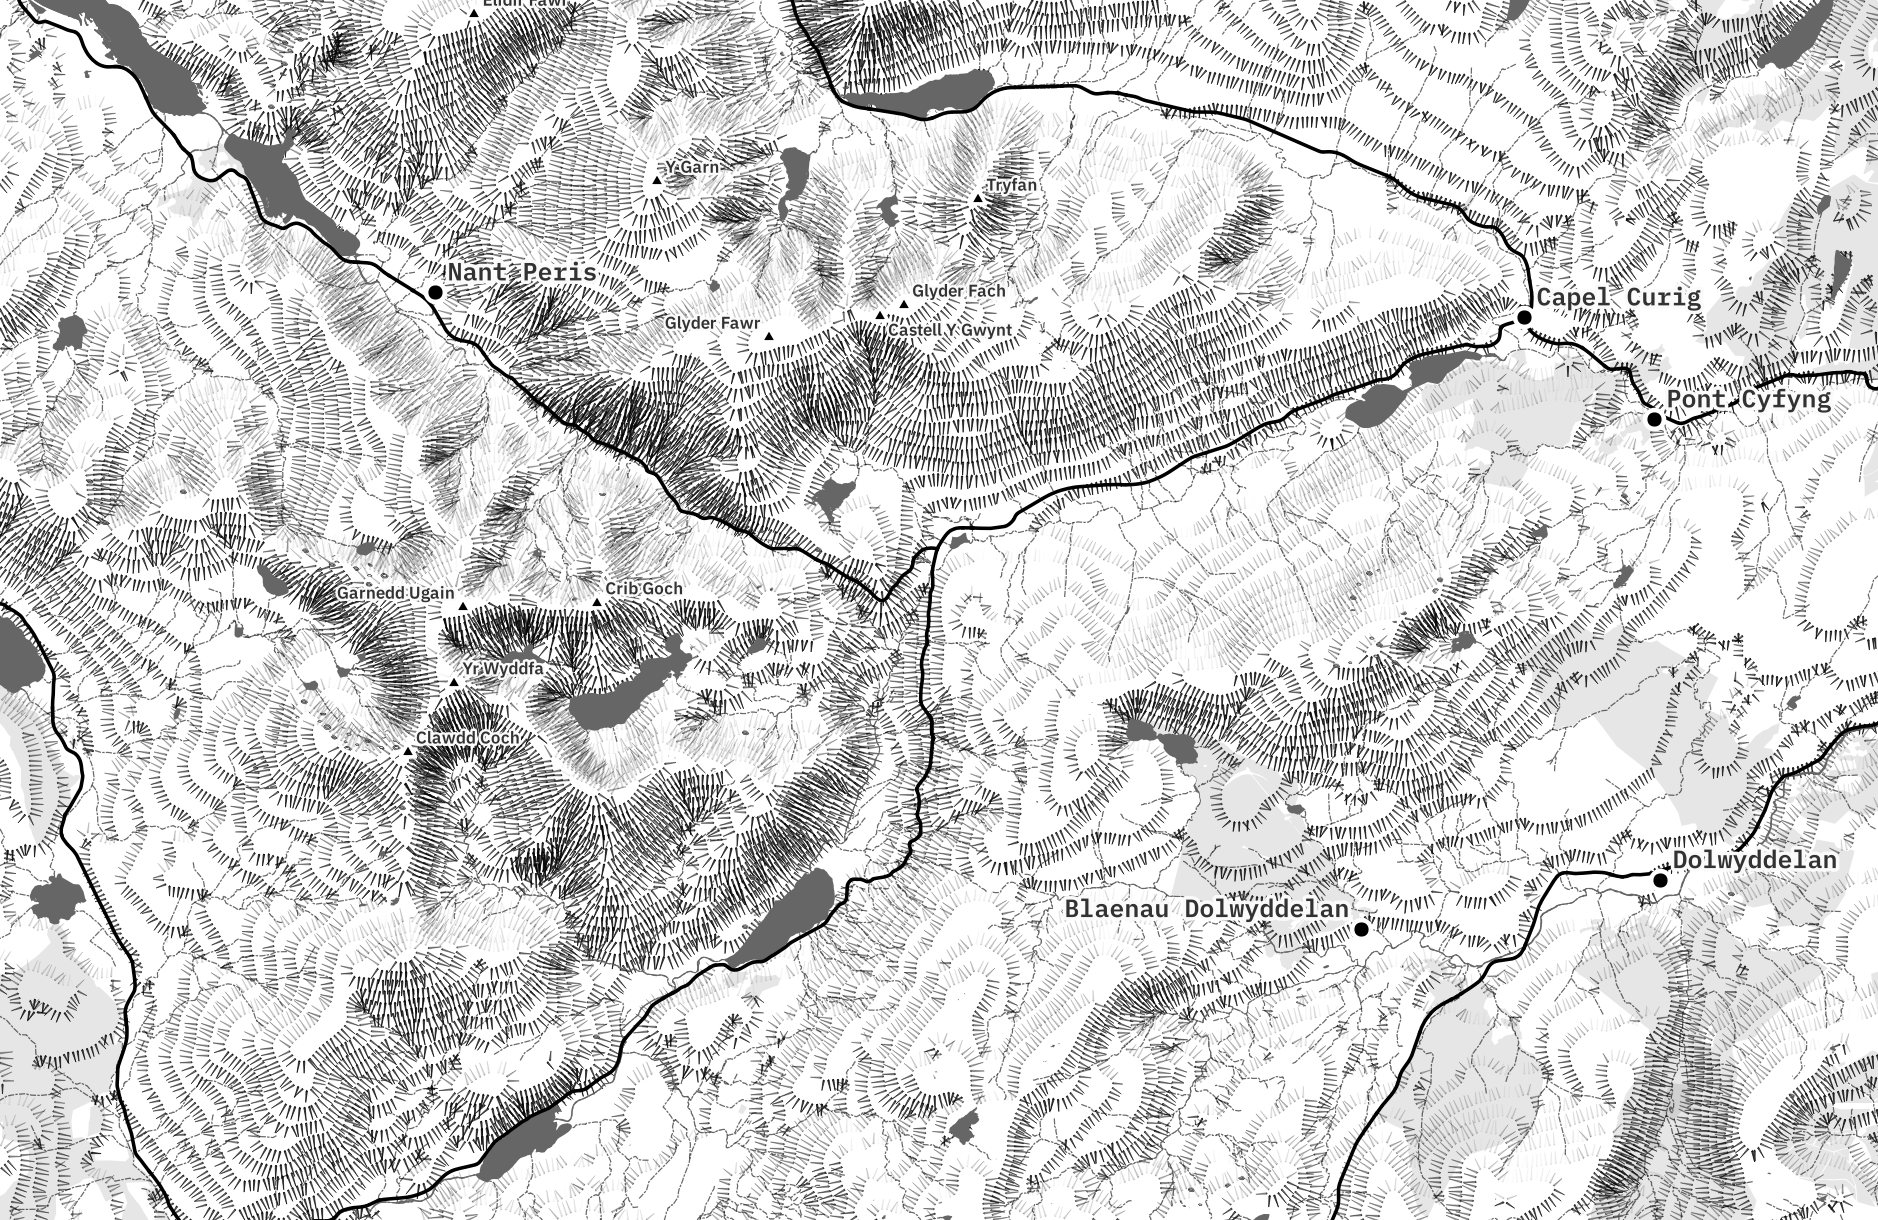 I recently fell down a very deep monochrome-shaped rabbit hole during my search for a cartographic style for this website. Part of that rabbit hole fa